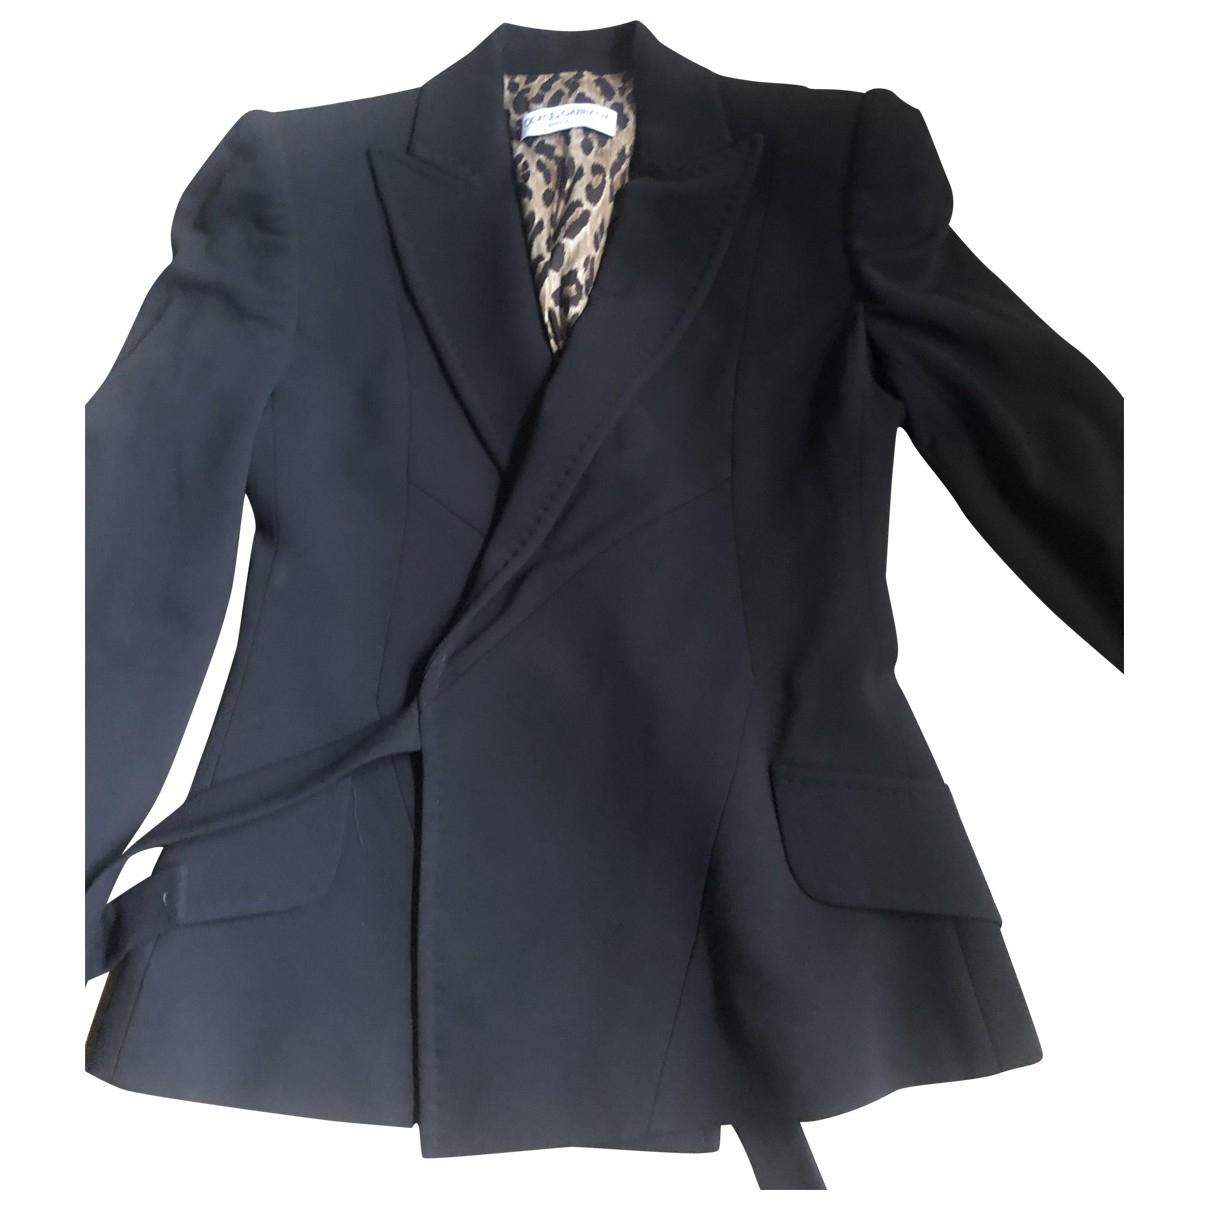 Dolce & Gabbana \N Black jacket for Women 40 IT